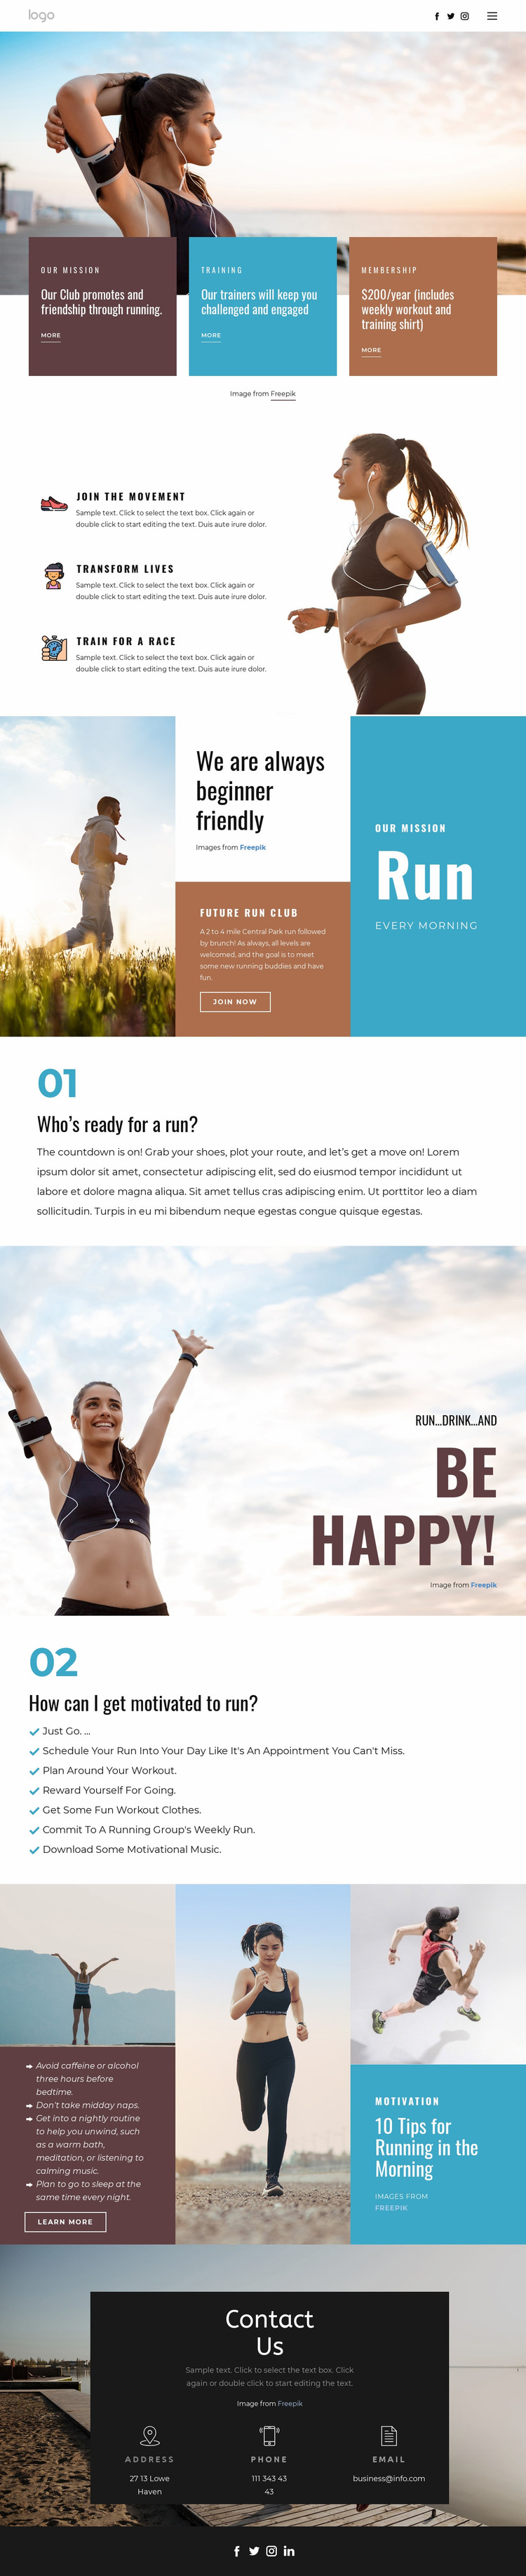 Running club for sports Website Mockup